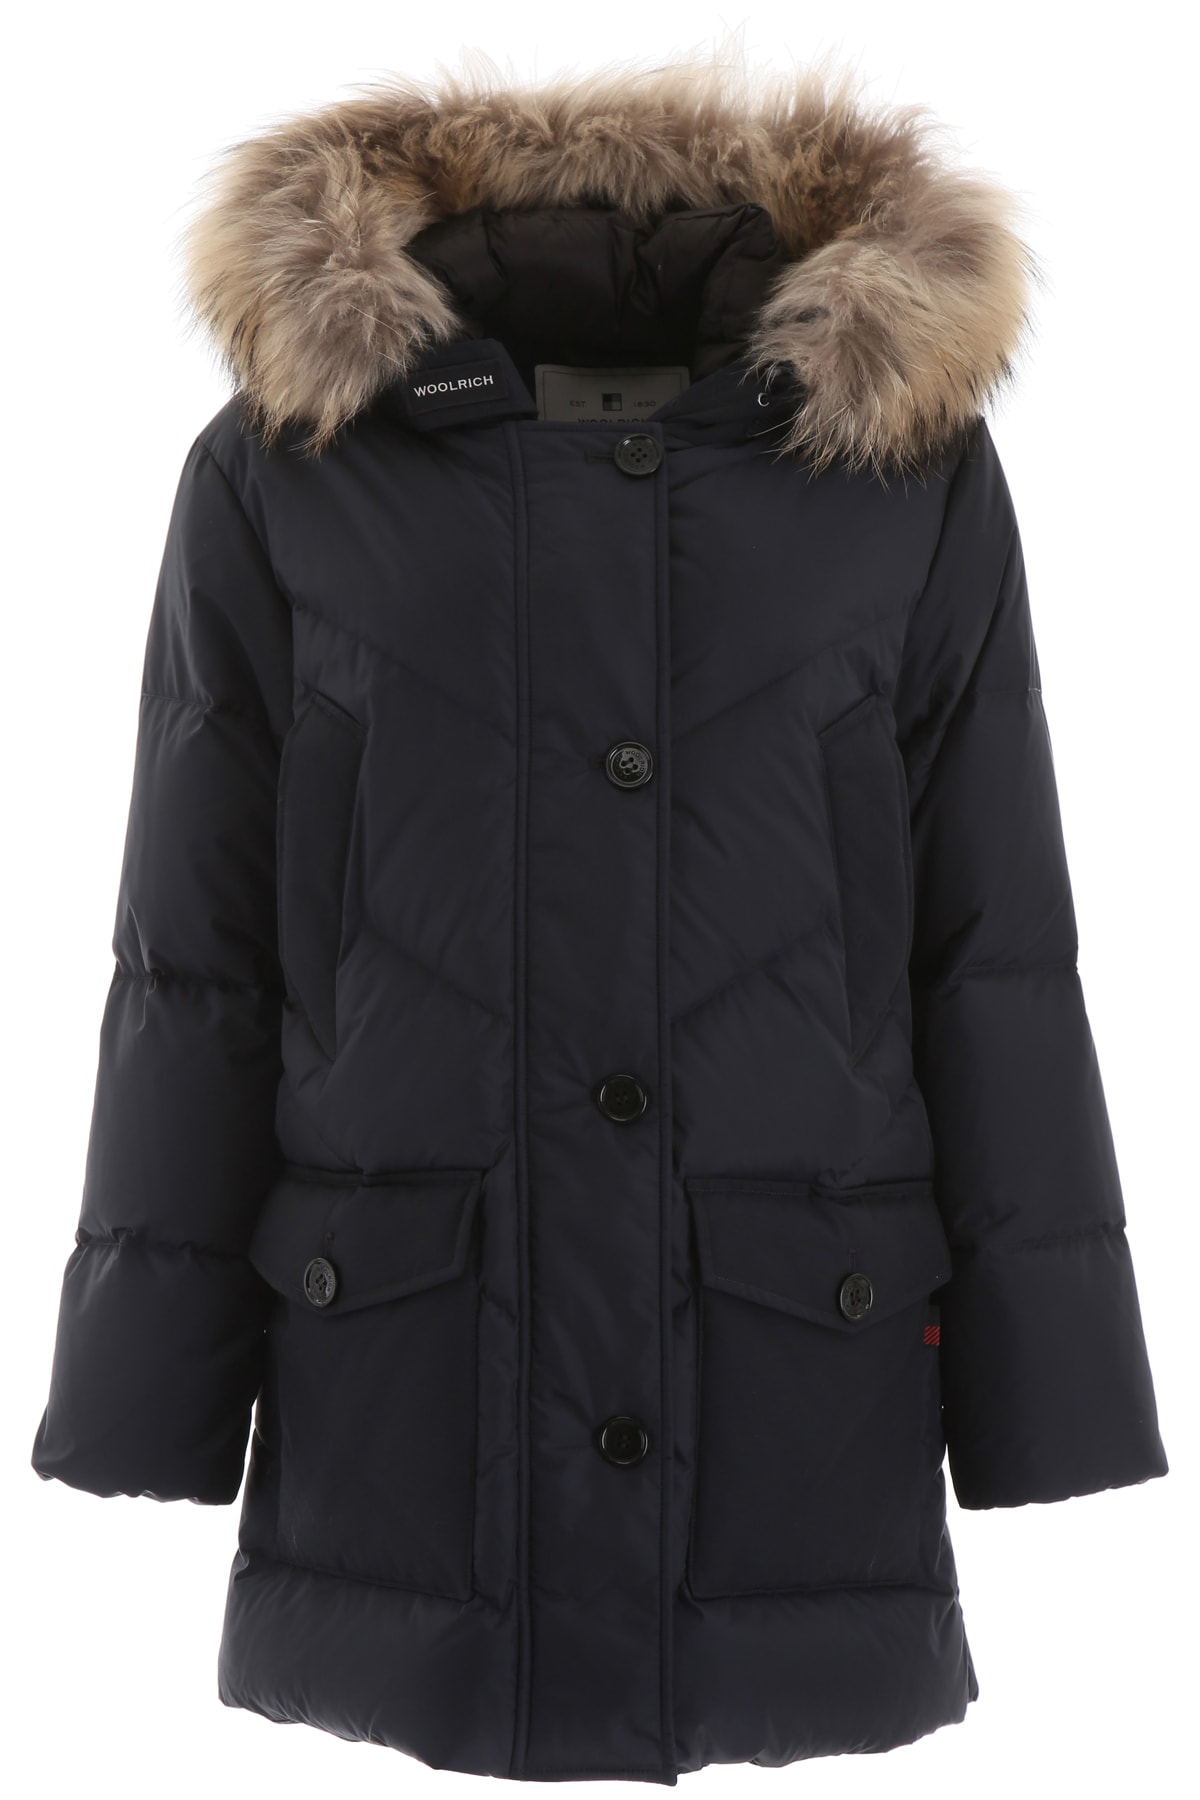 Photo of  Woolrich Parka With Fur- shop Woolrich jackets online sales